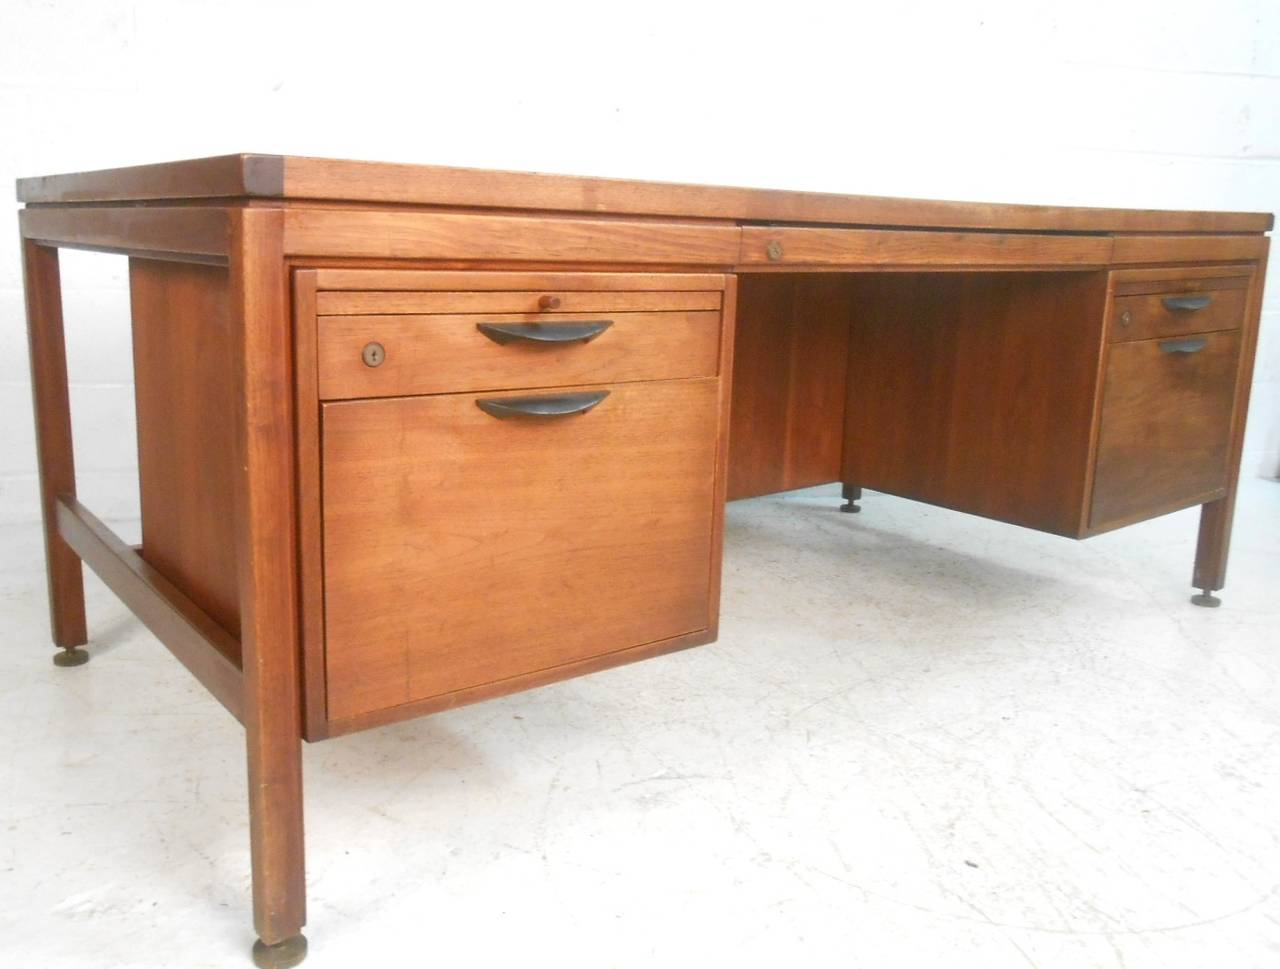 This Mid-Century Modern Executive Desk by Jens Risom is no longer